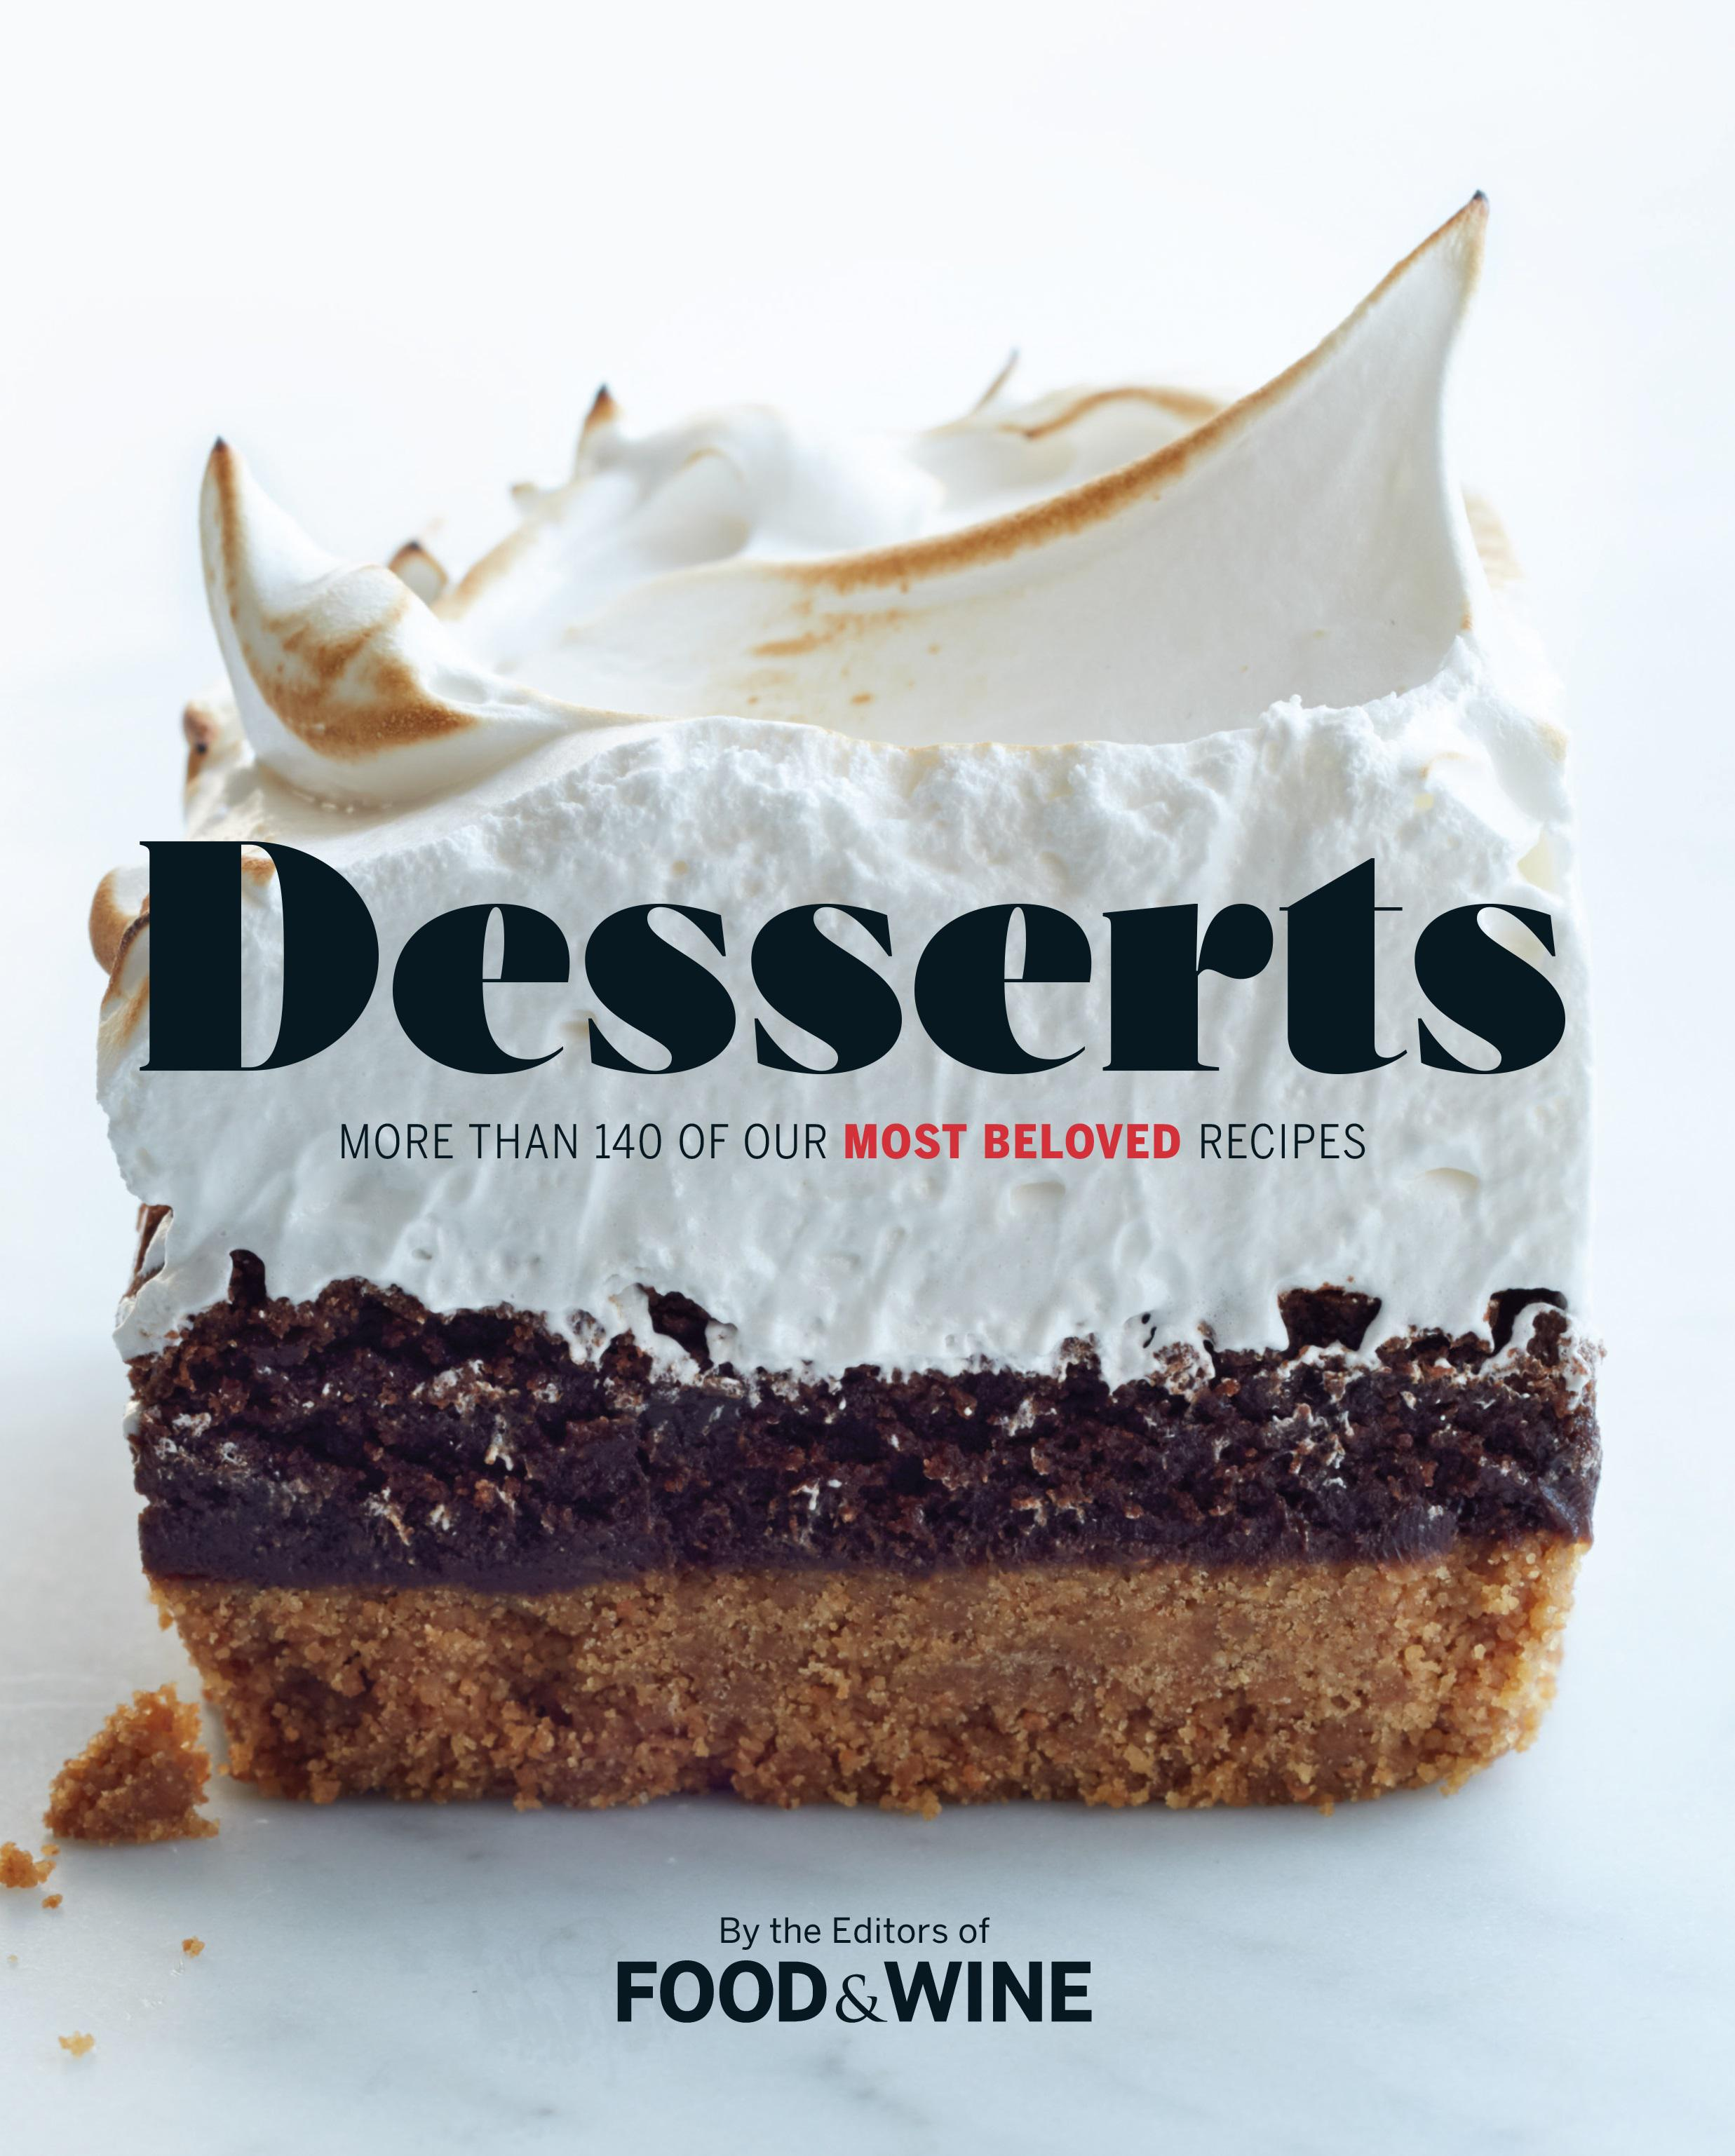 Desserts more than 140 of food wines most beloved recipes forumfinder Choice Image